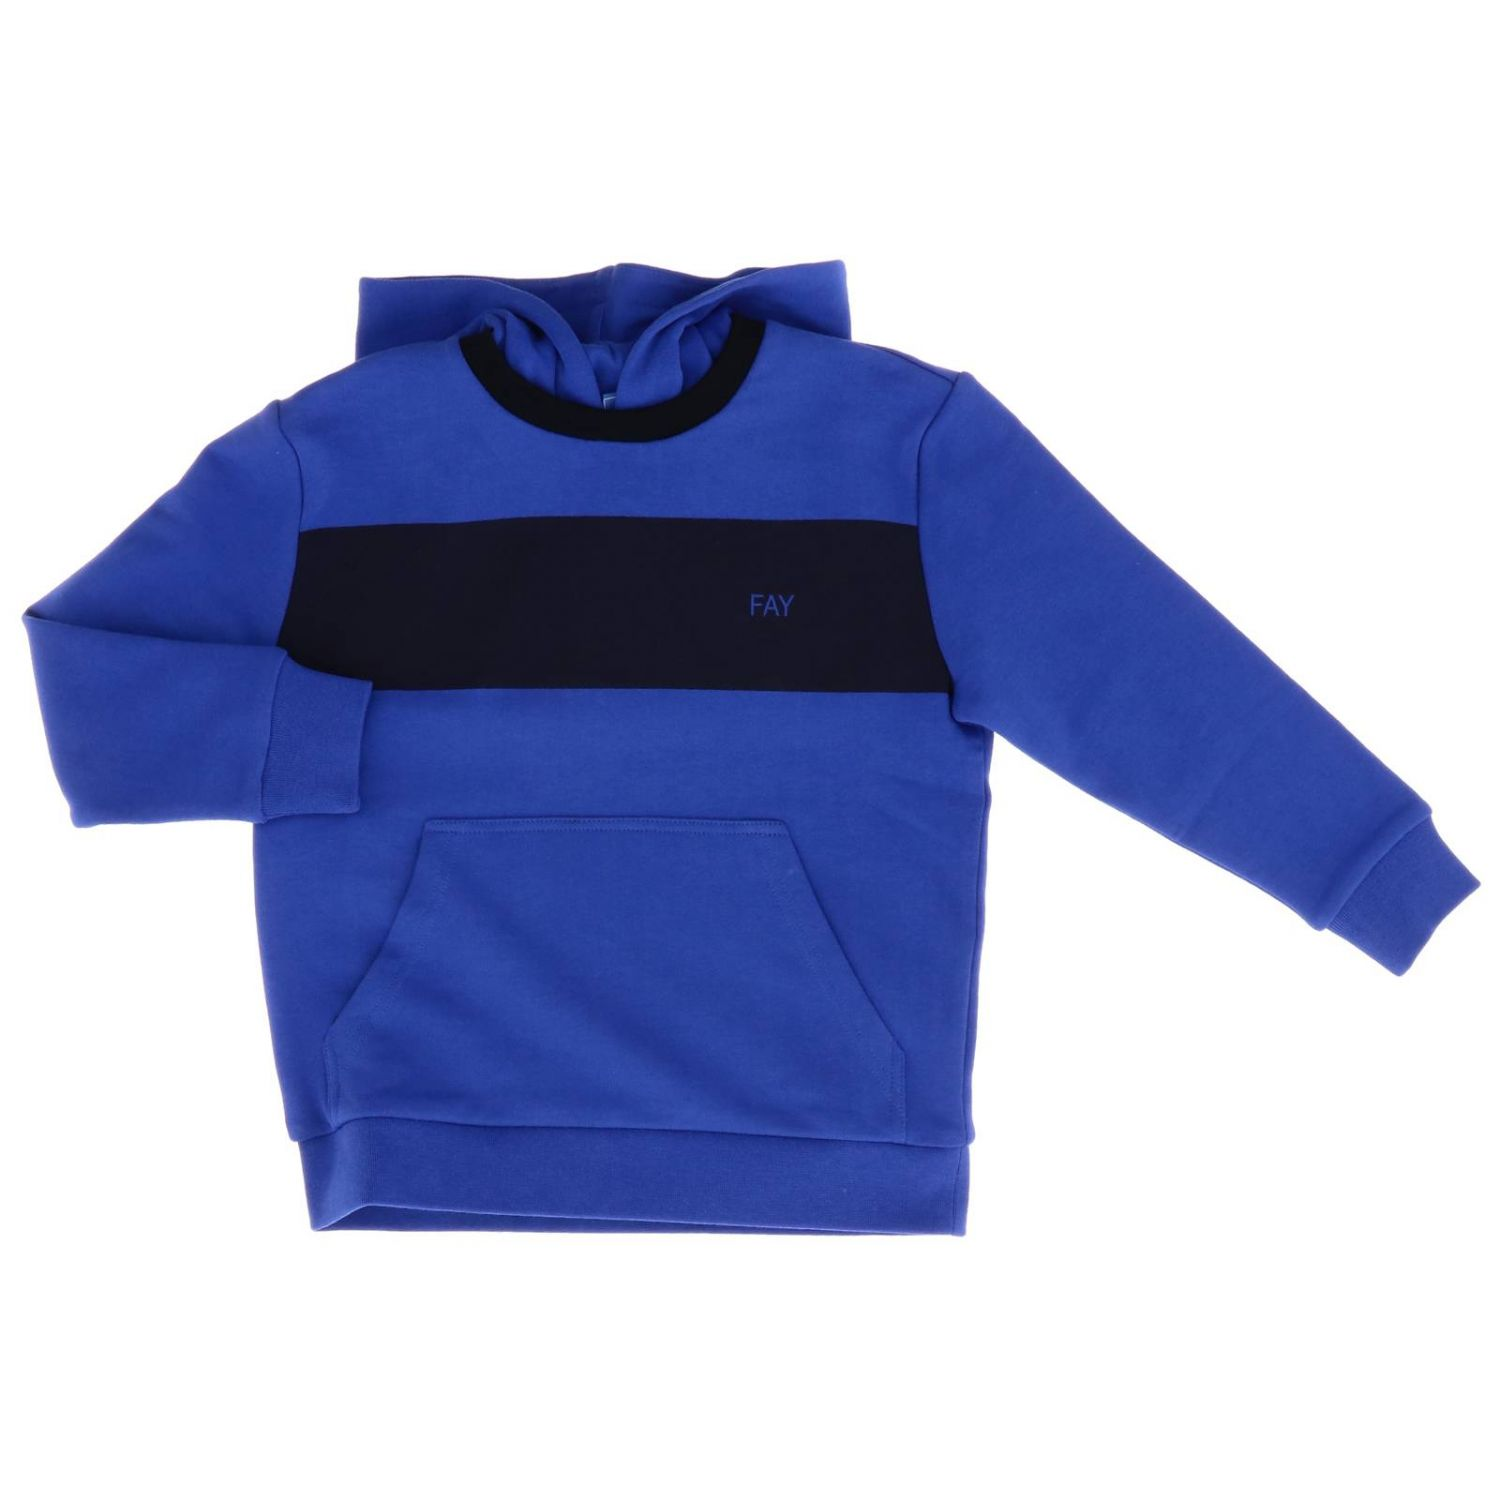 Fay sweatshirt with hood and logo blue 1